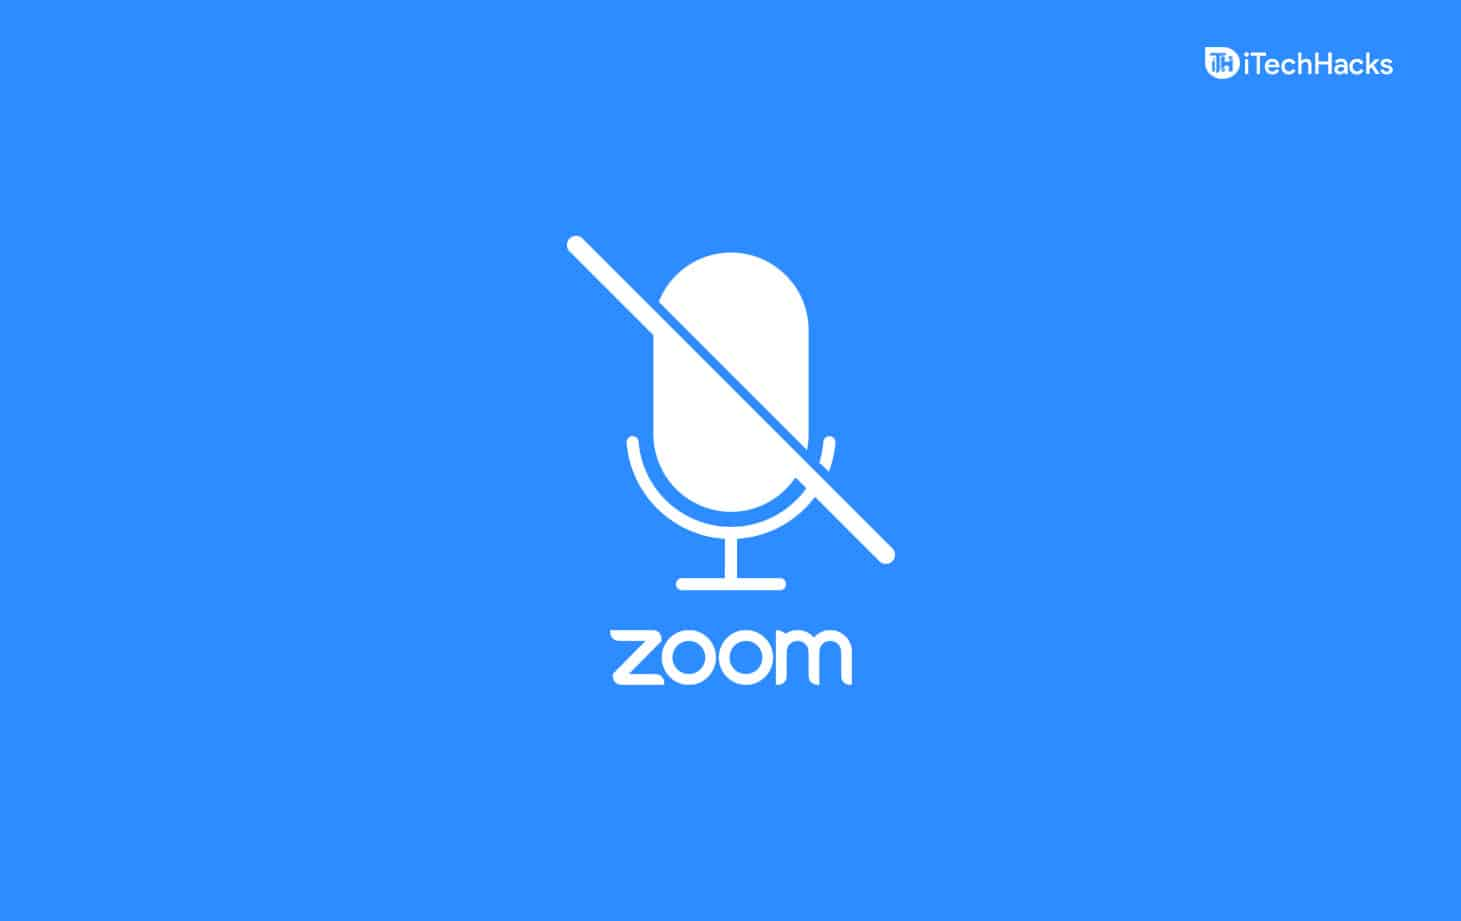 How To Mute Zoom Audio Without Muting Computer